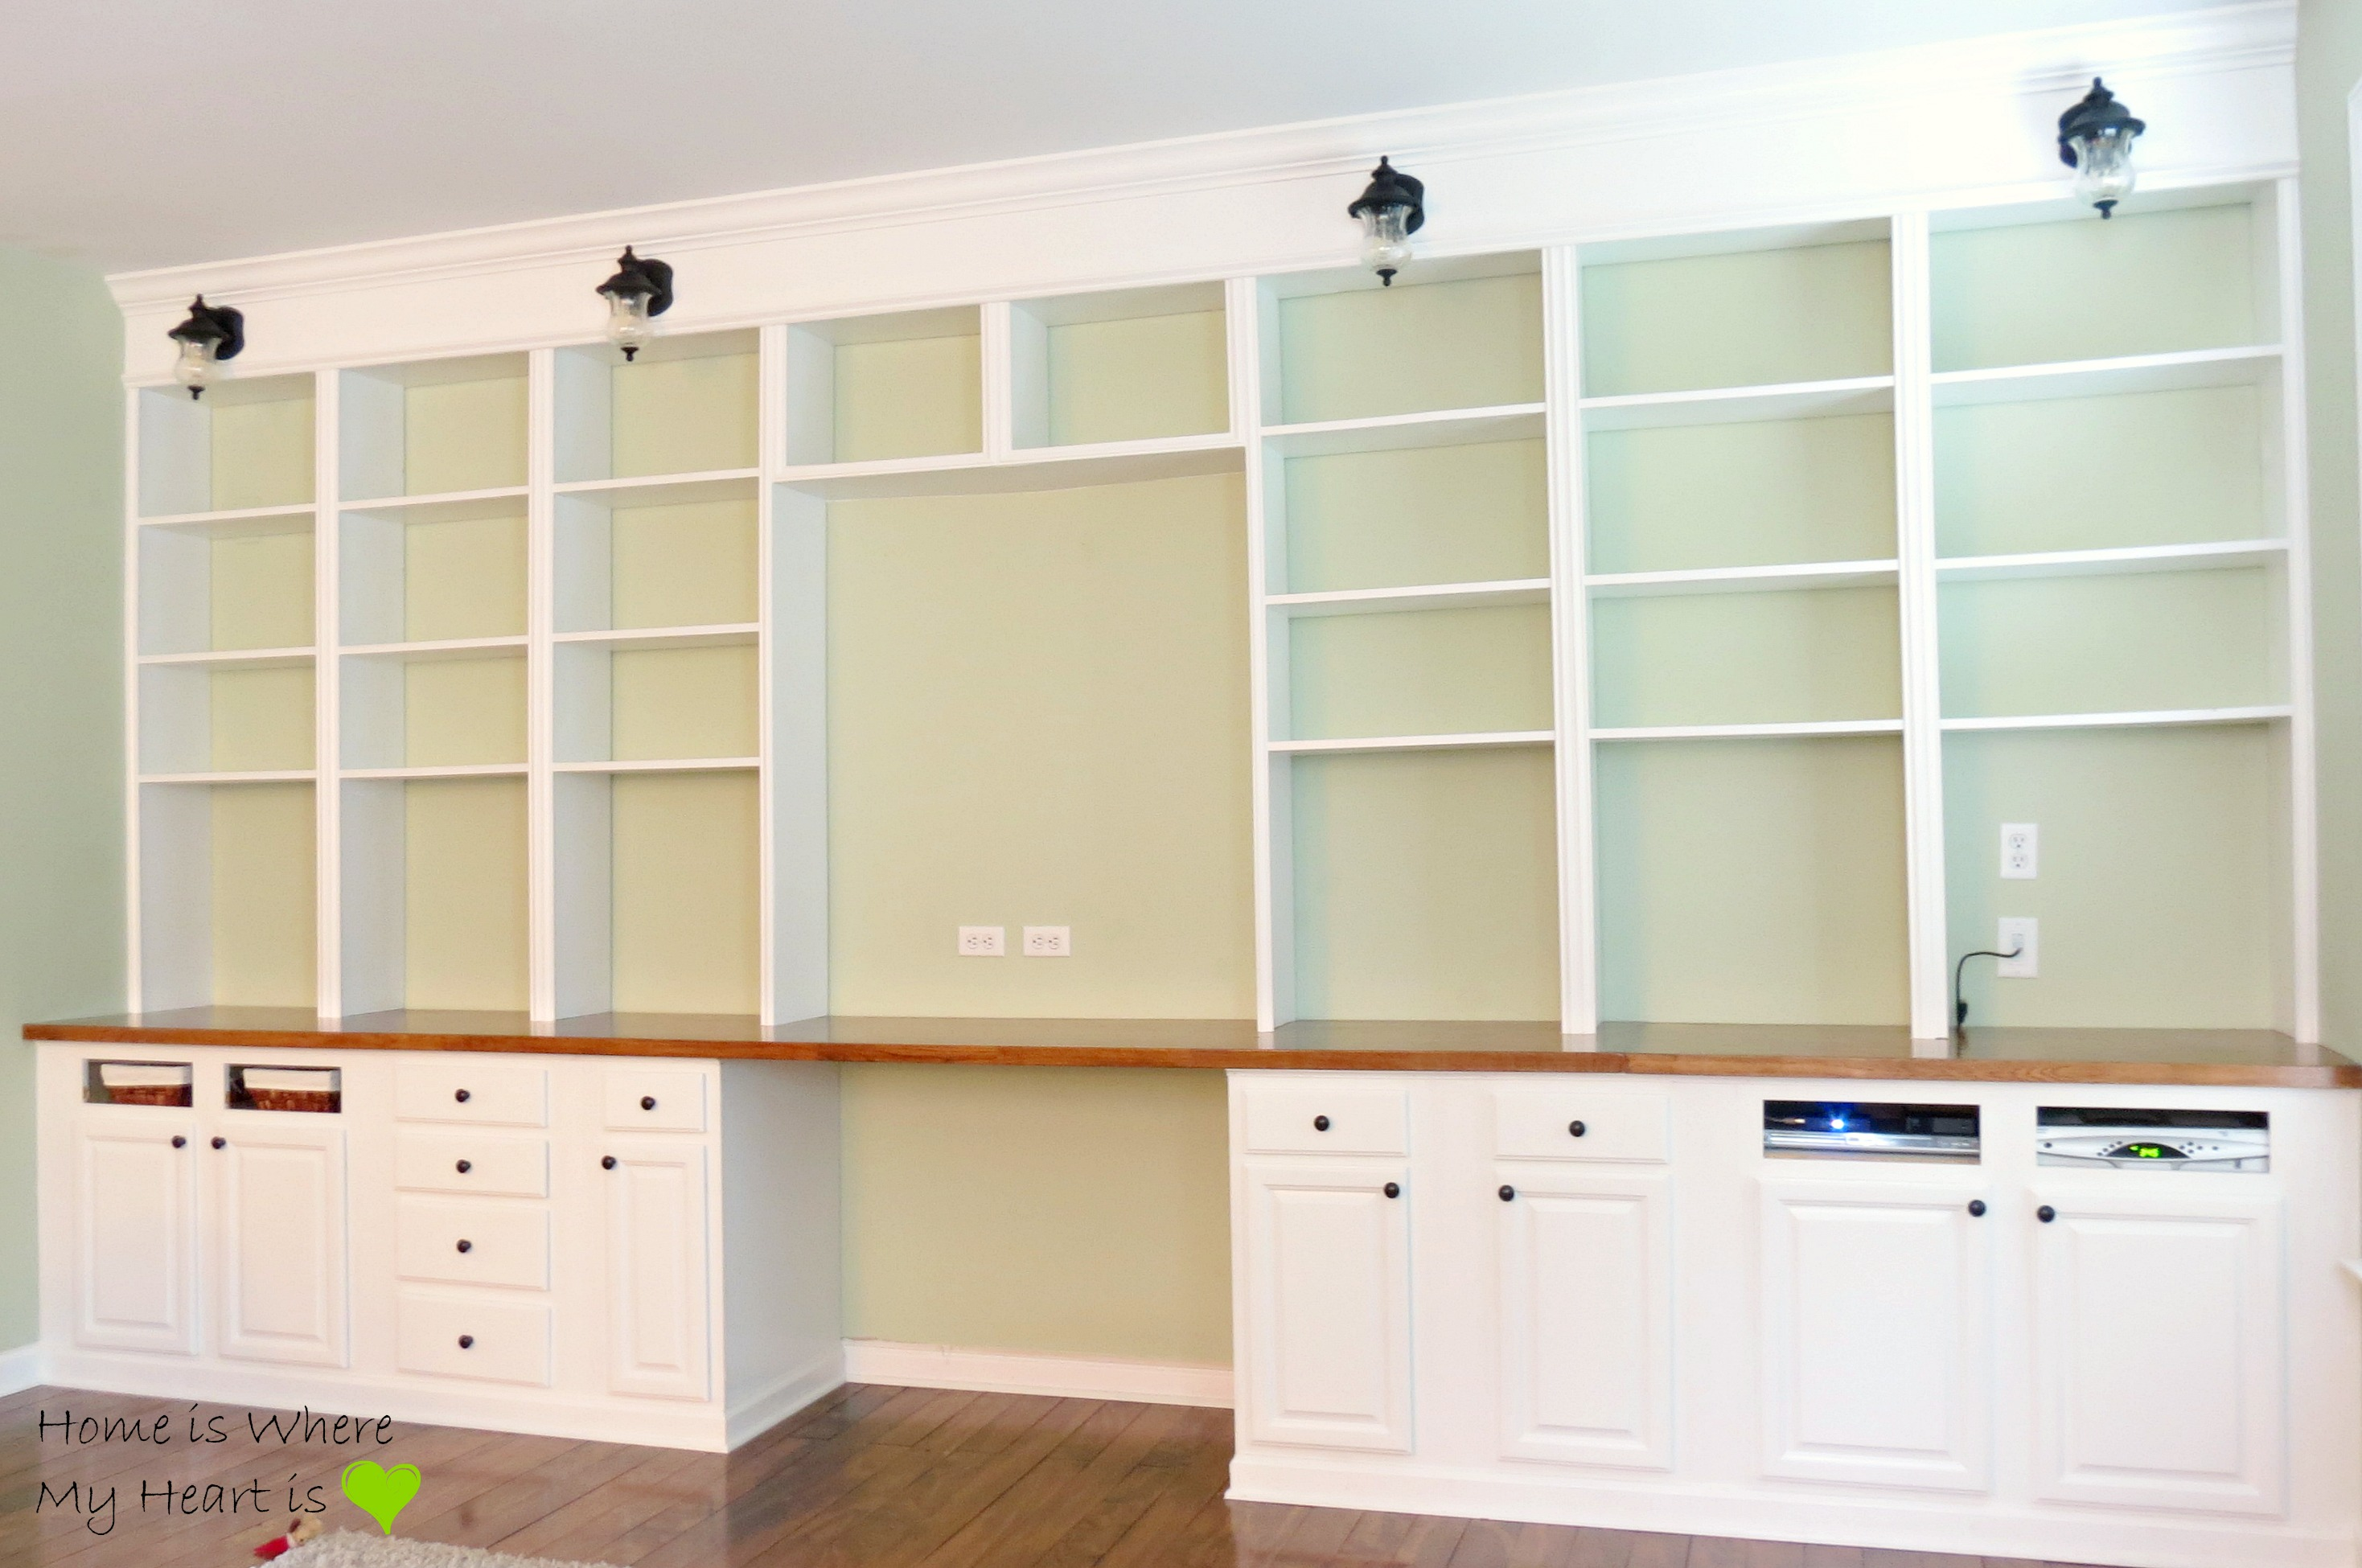 Beau ... Wall To Wall Built In Desk And Bookcase | Home Is Where My ...